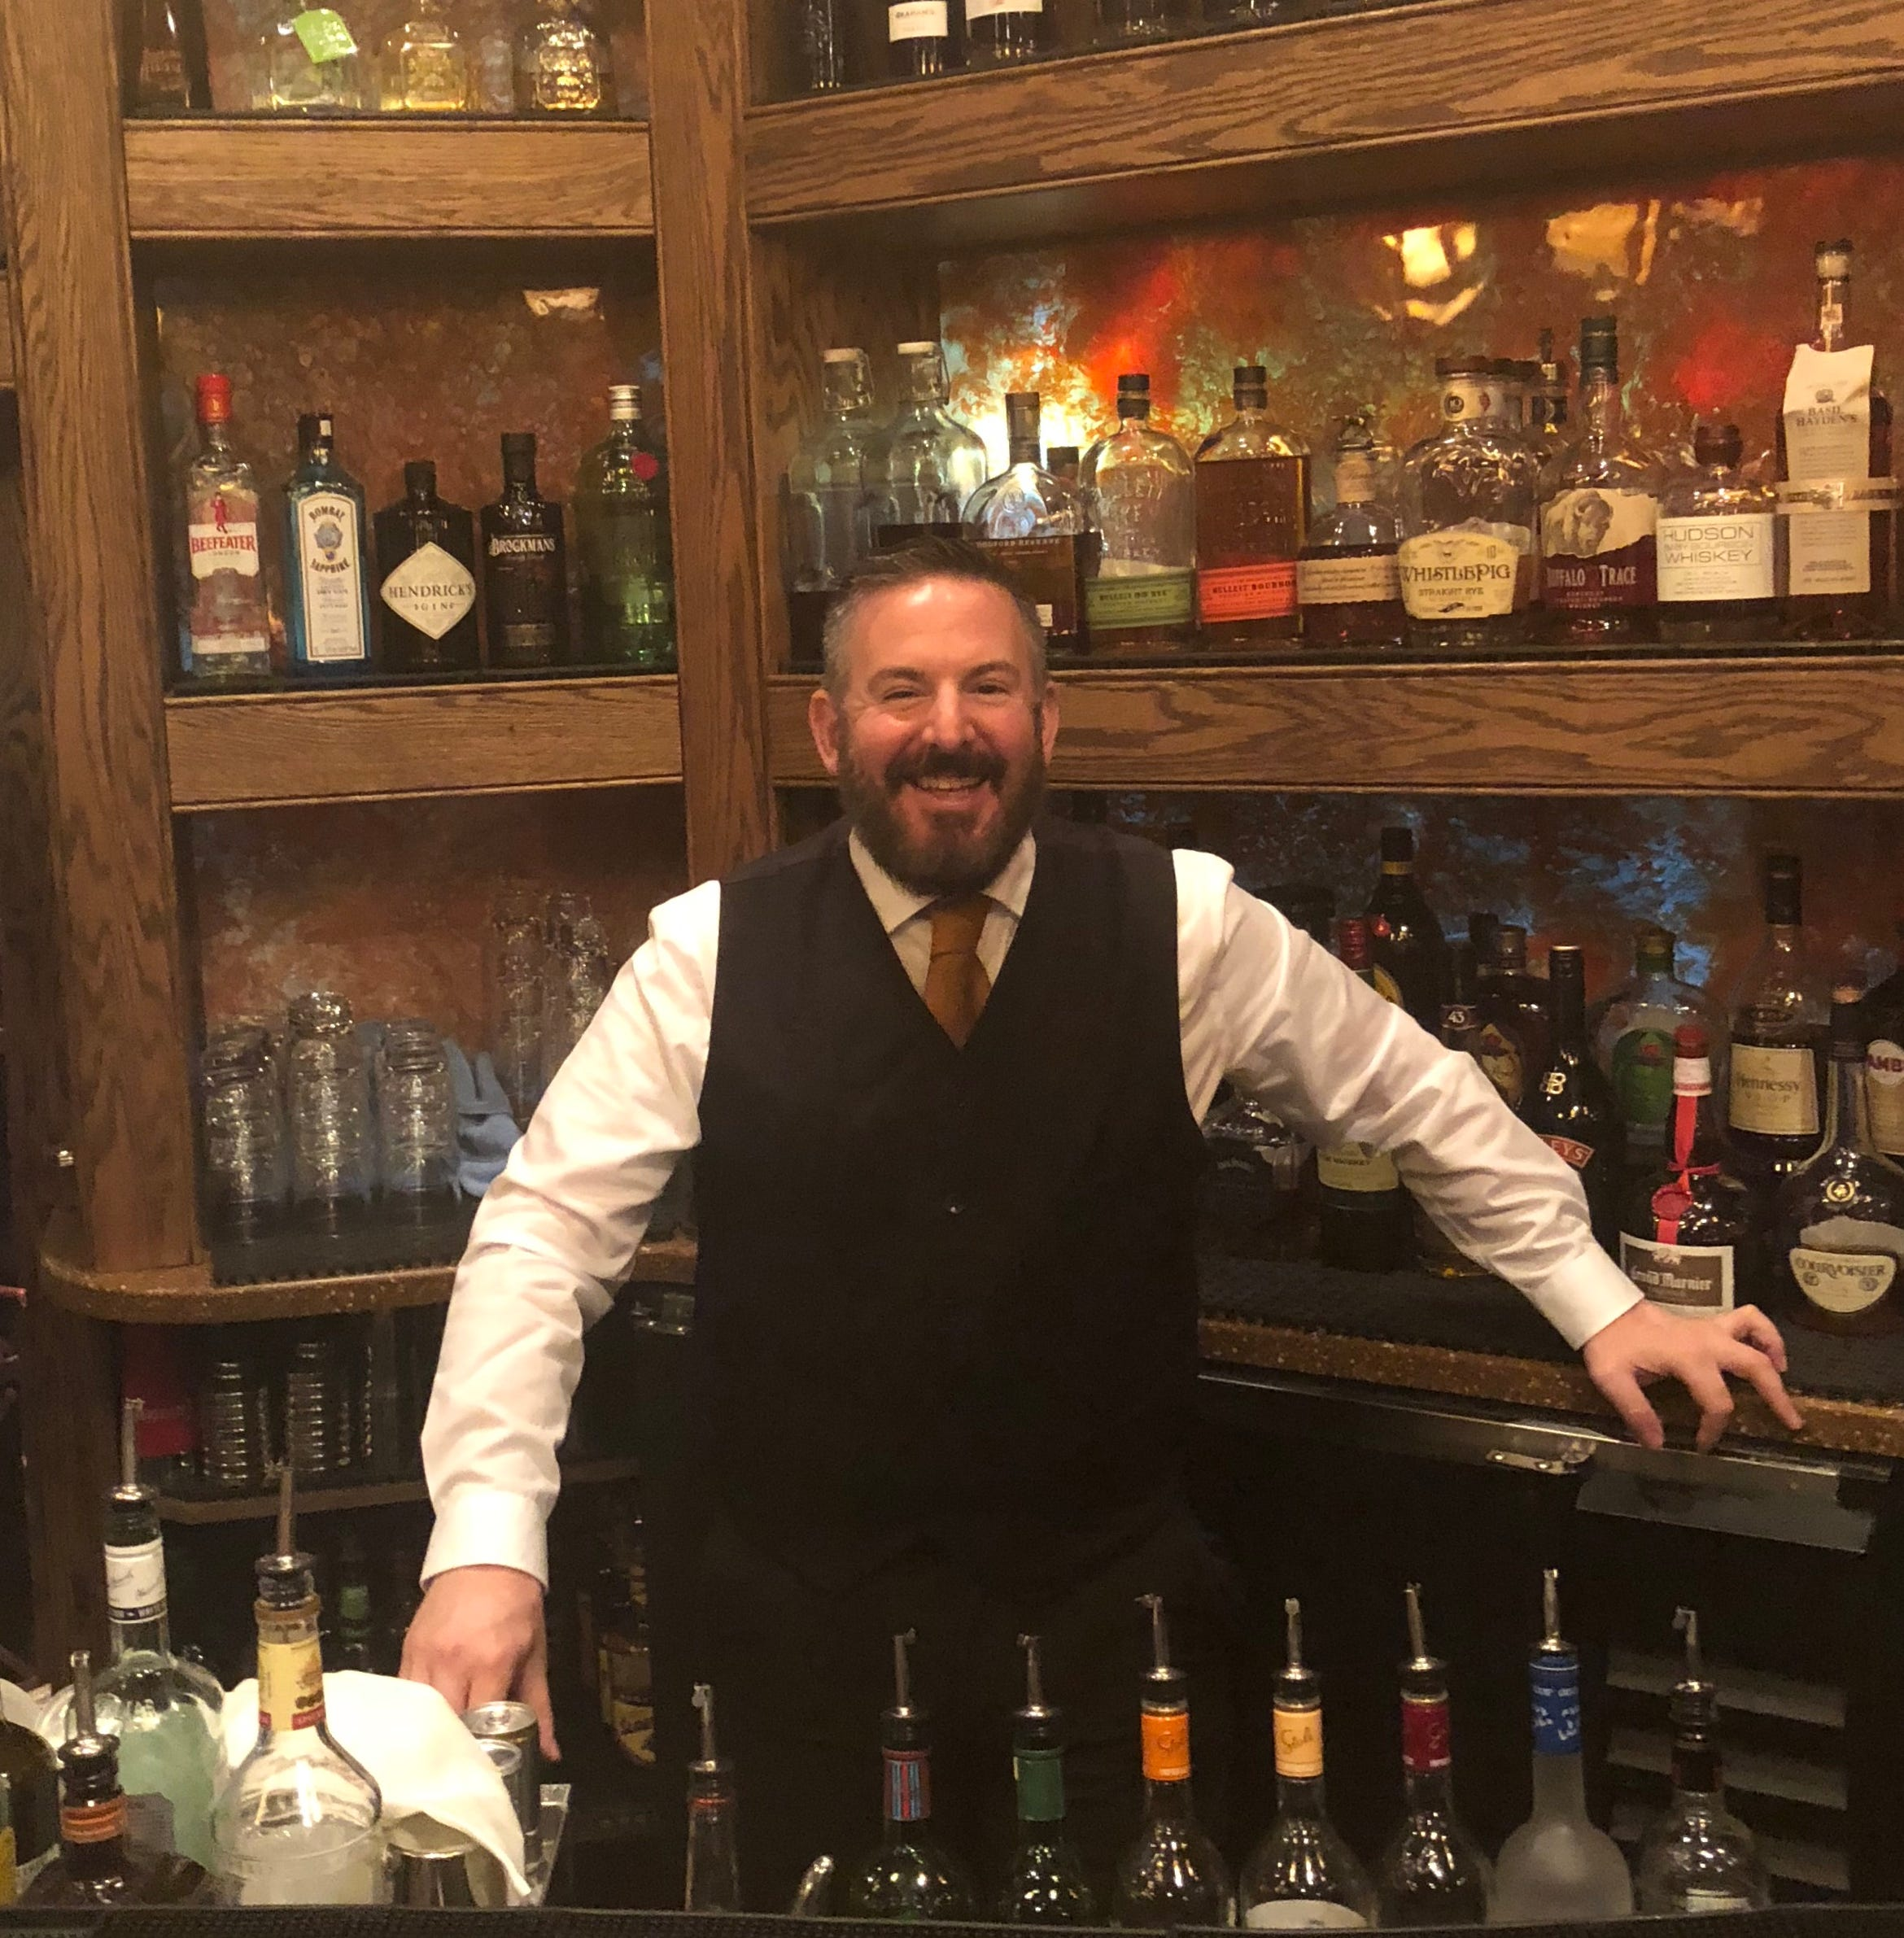 A day in the life of your local bartender